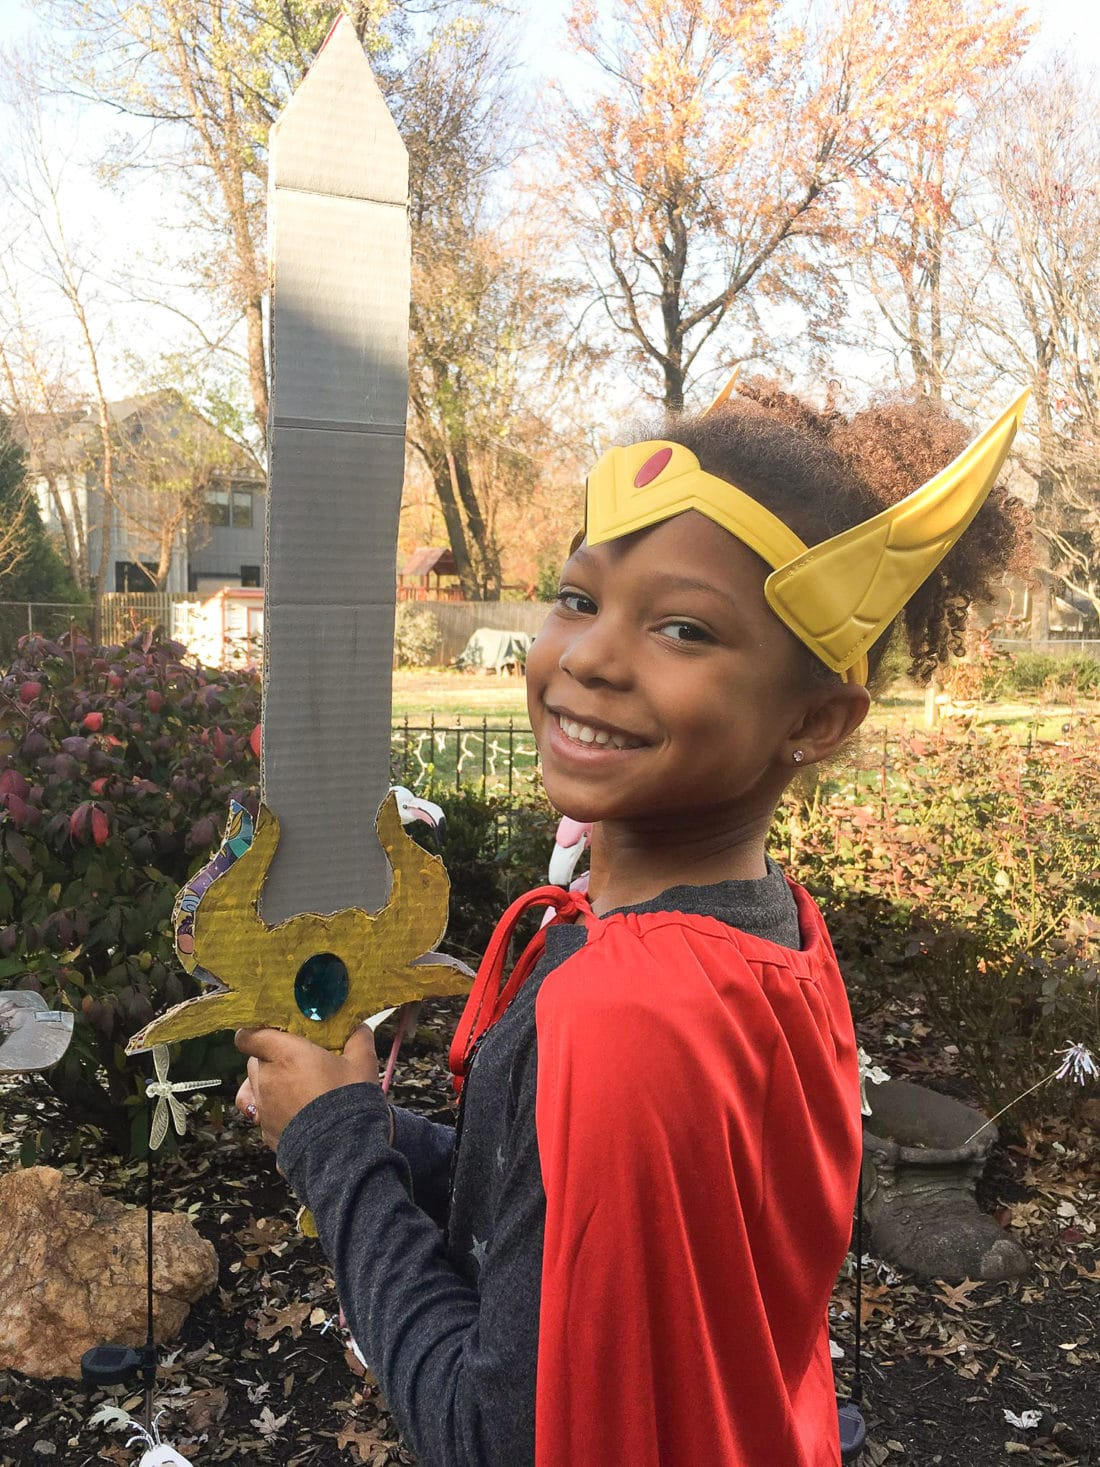 African American Girl wielding she-ra sword craft. The highly anticipated Netflix original, DreamWorks She-Ra and the Princesses of Power, is now available. Stream all 13 episodes only on Netflix today!